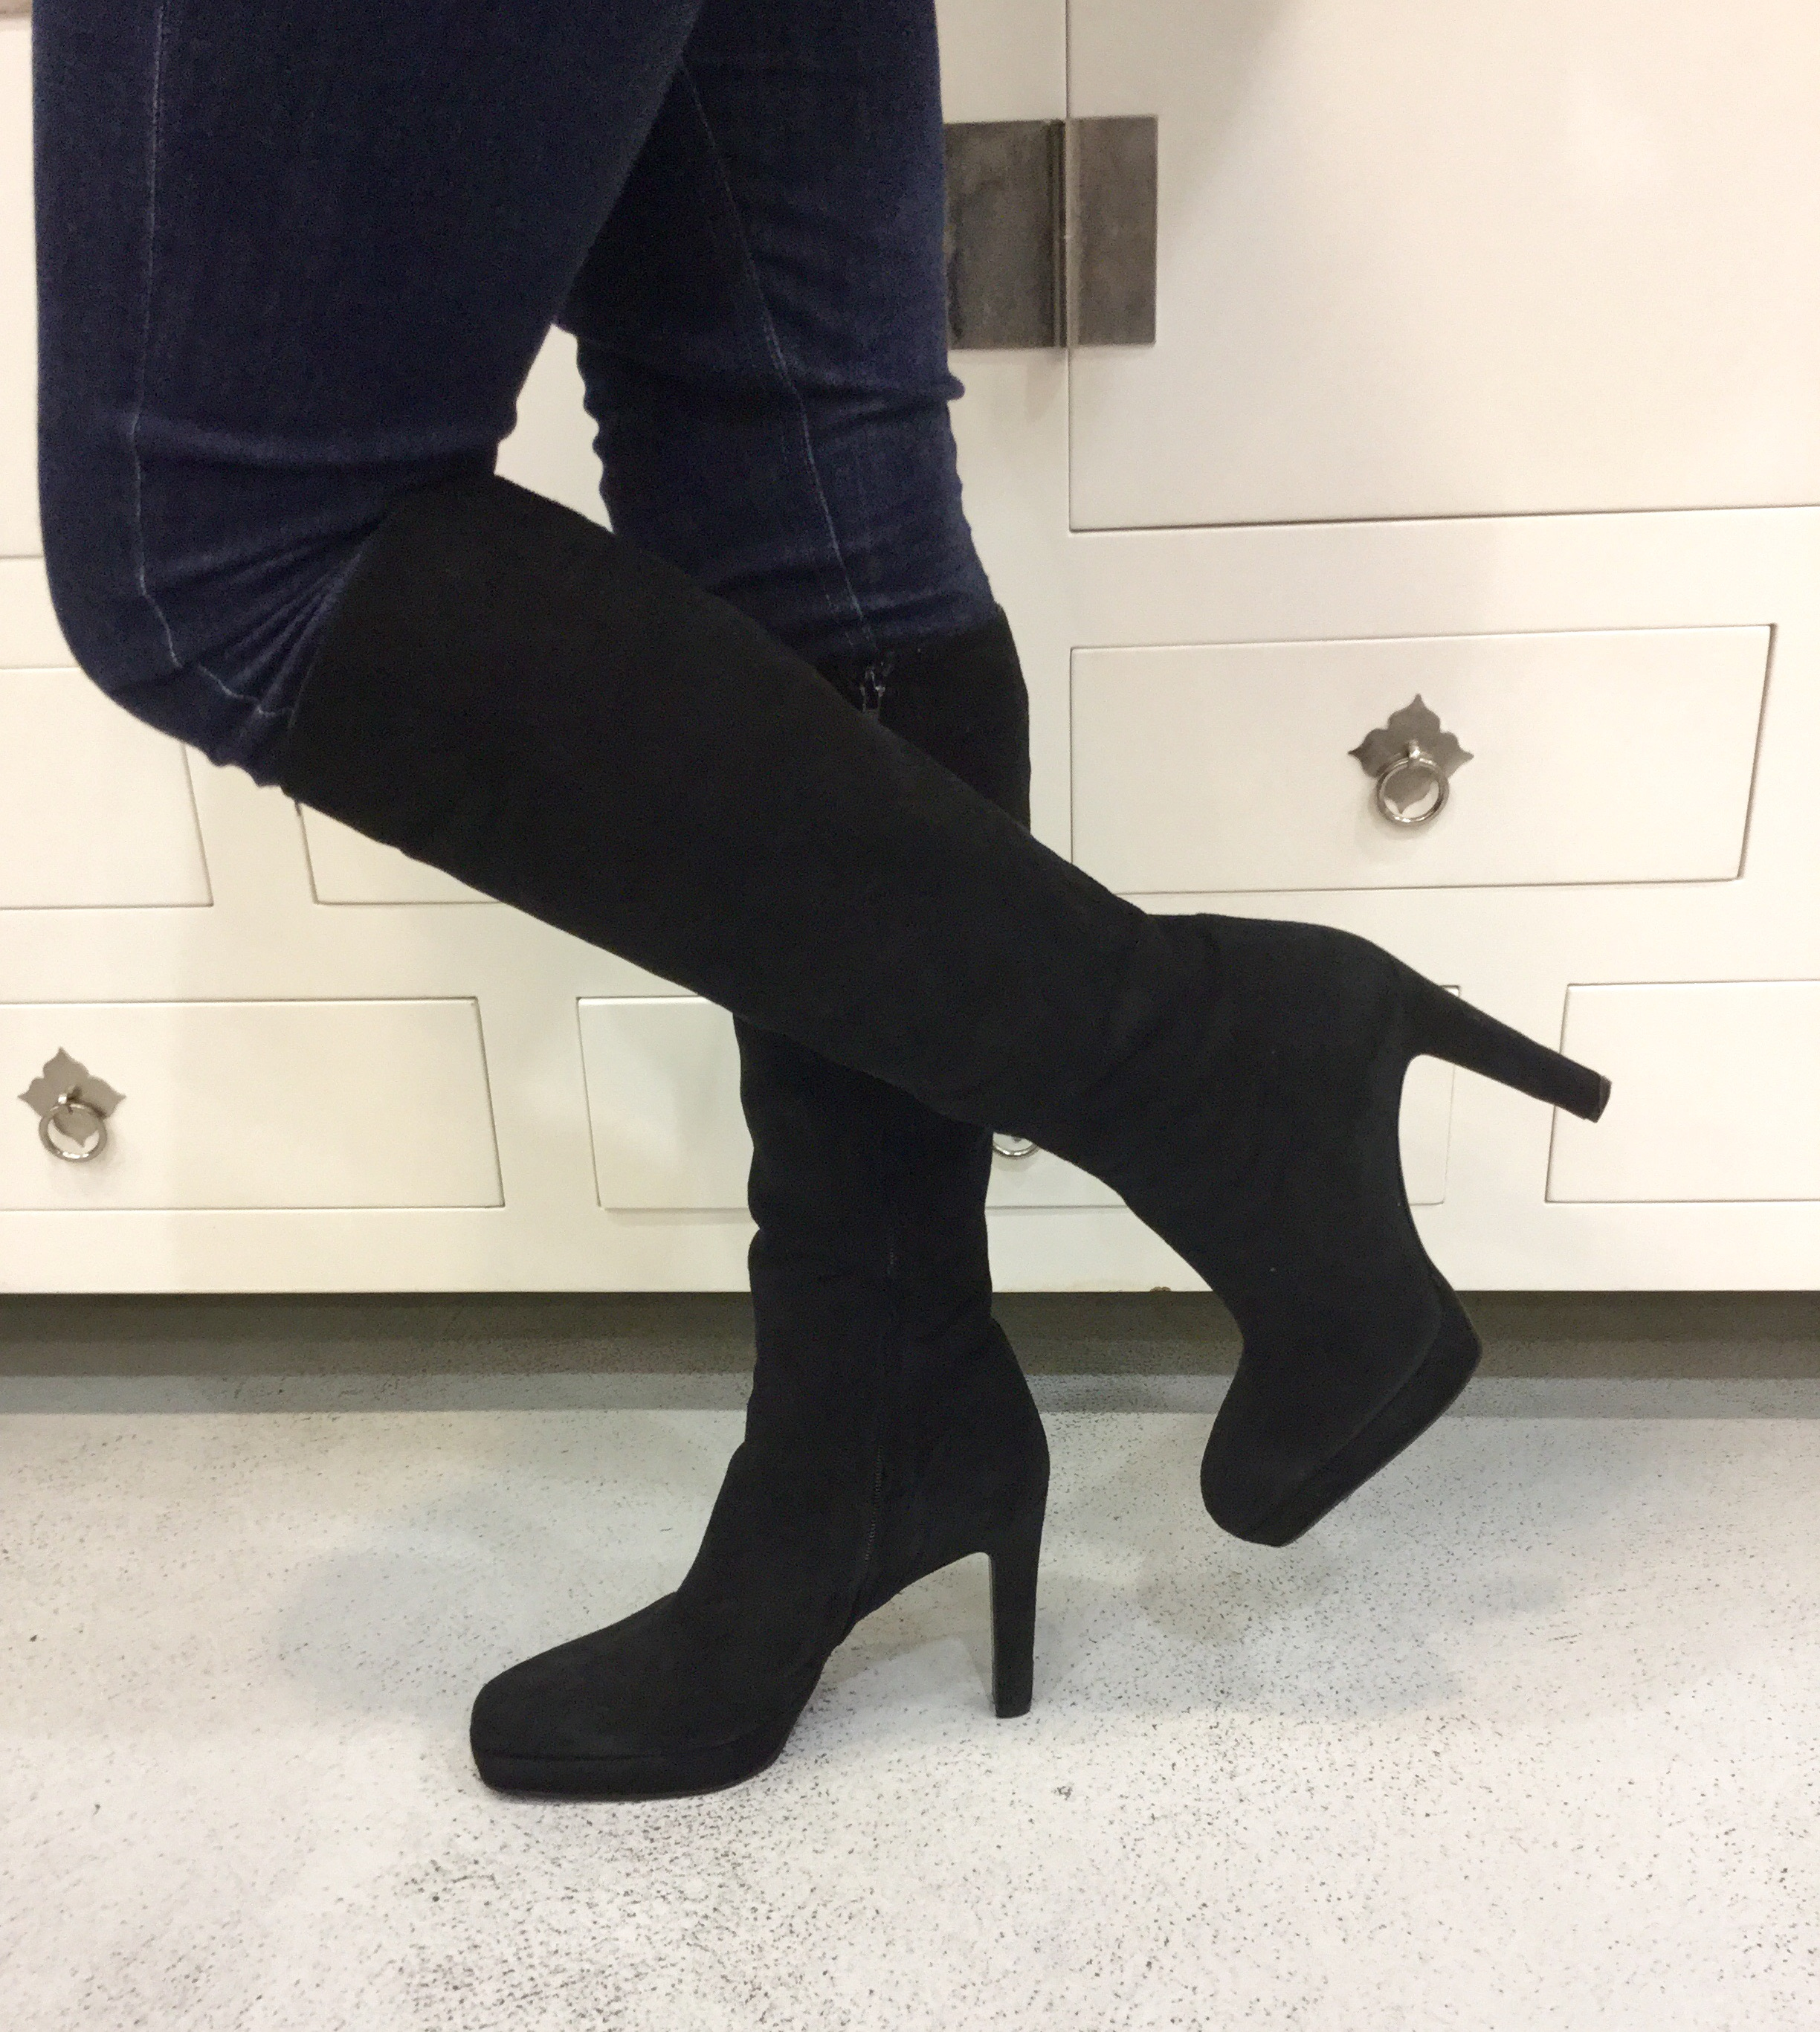 abcebcbdd77 zPre-Owned Gucci Black Suede Tall Boots